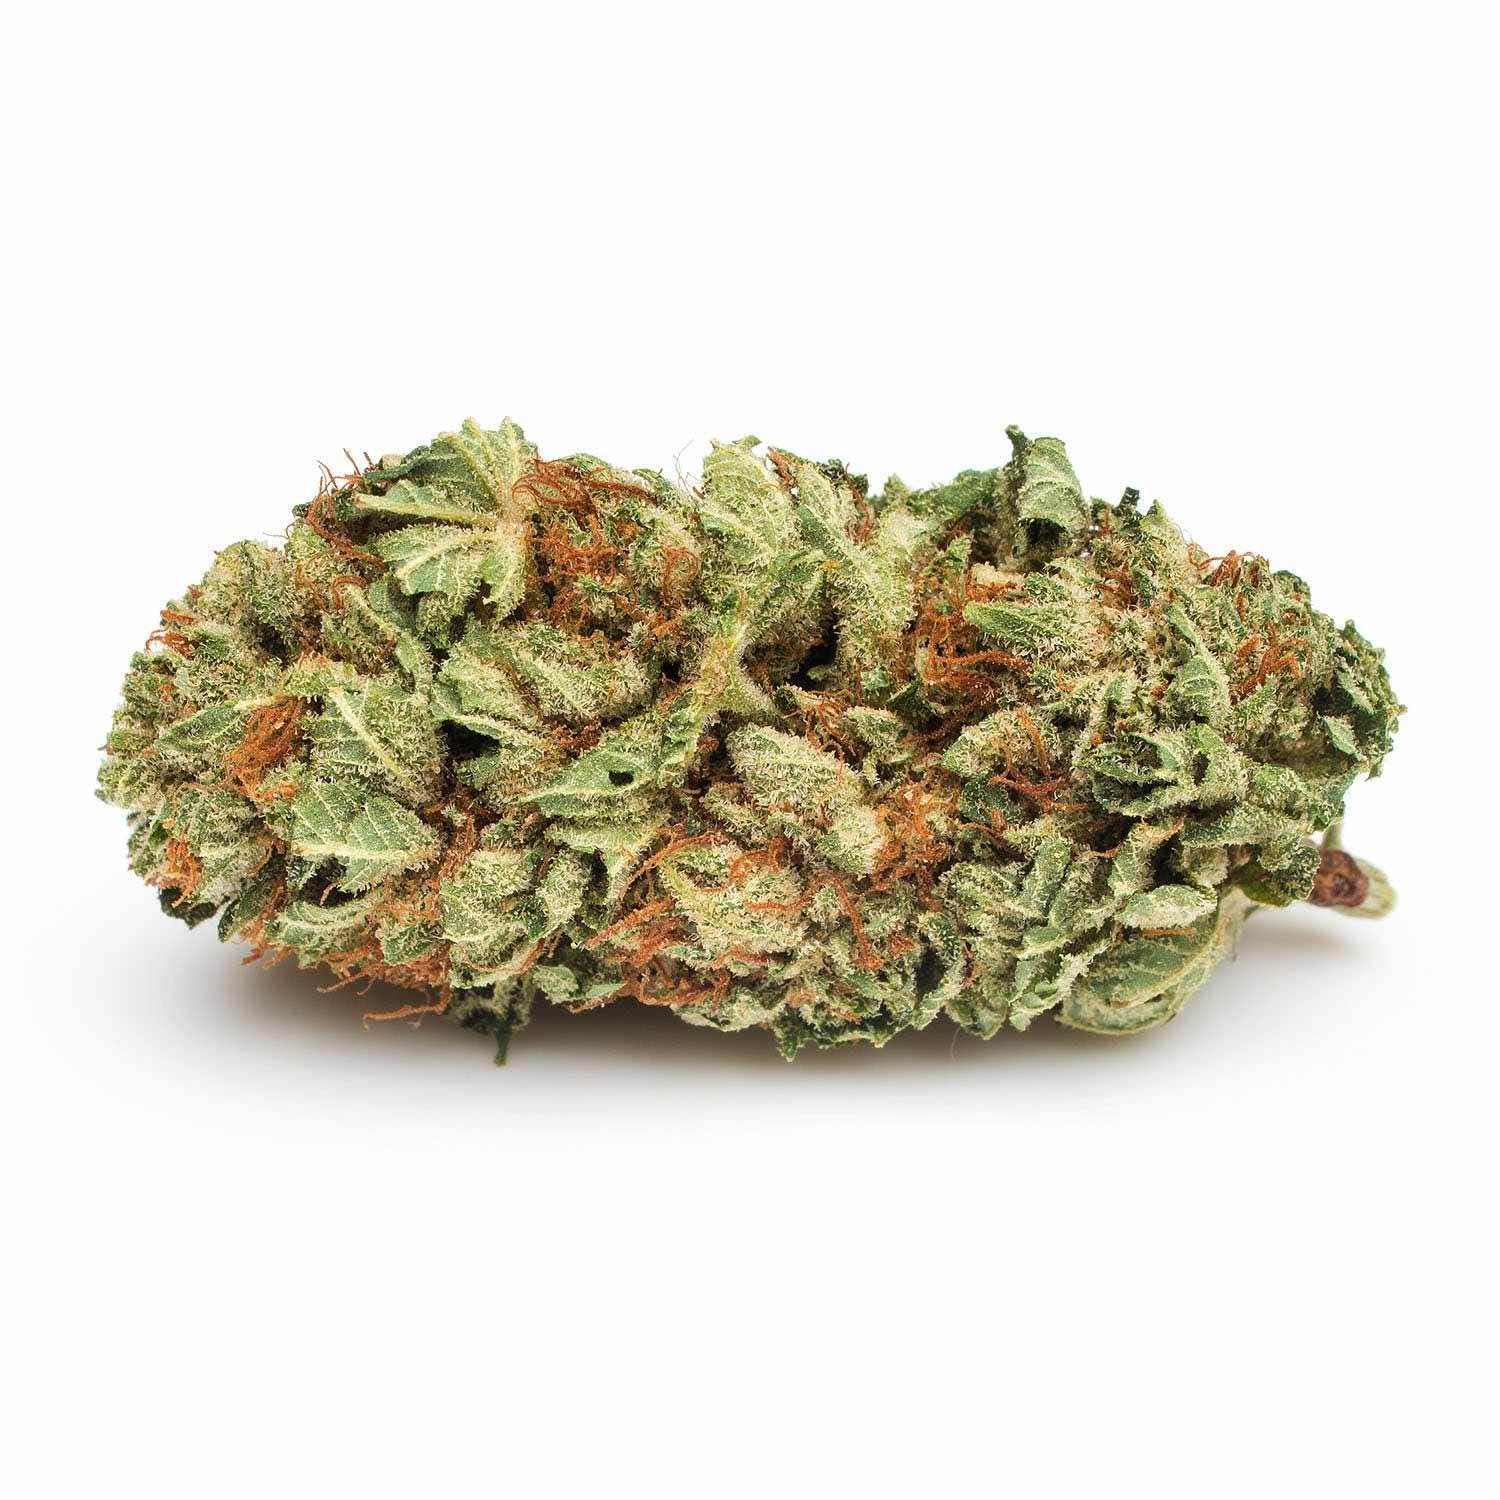 marijuana-dispensaries-pineapple-exchange-medical-in-denver-casey-jones